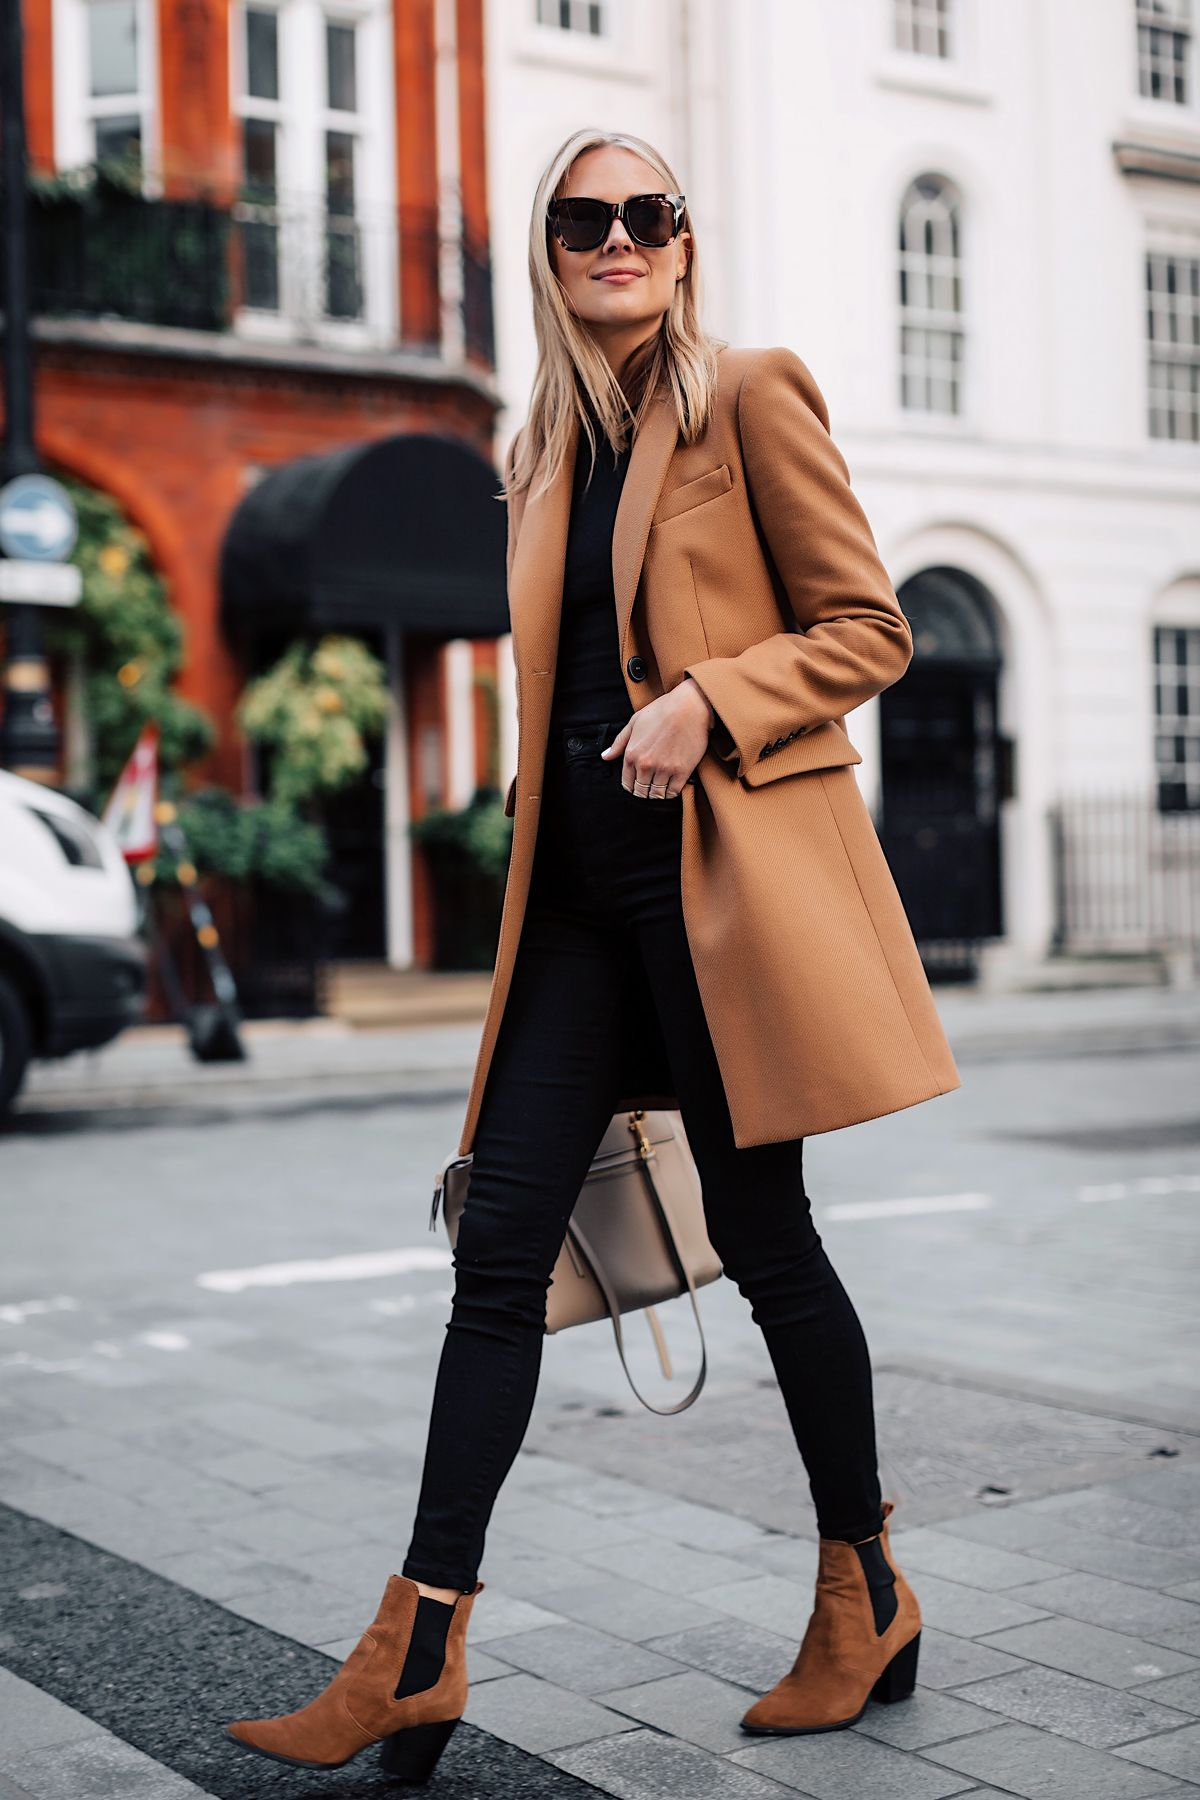 cdf80416c21f Fashion Jackson Zara Camel Coat Black Sweater Black Skinny Jeans Tan  Booties Outfit 1